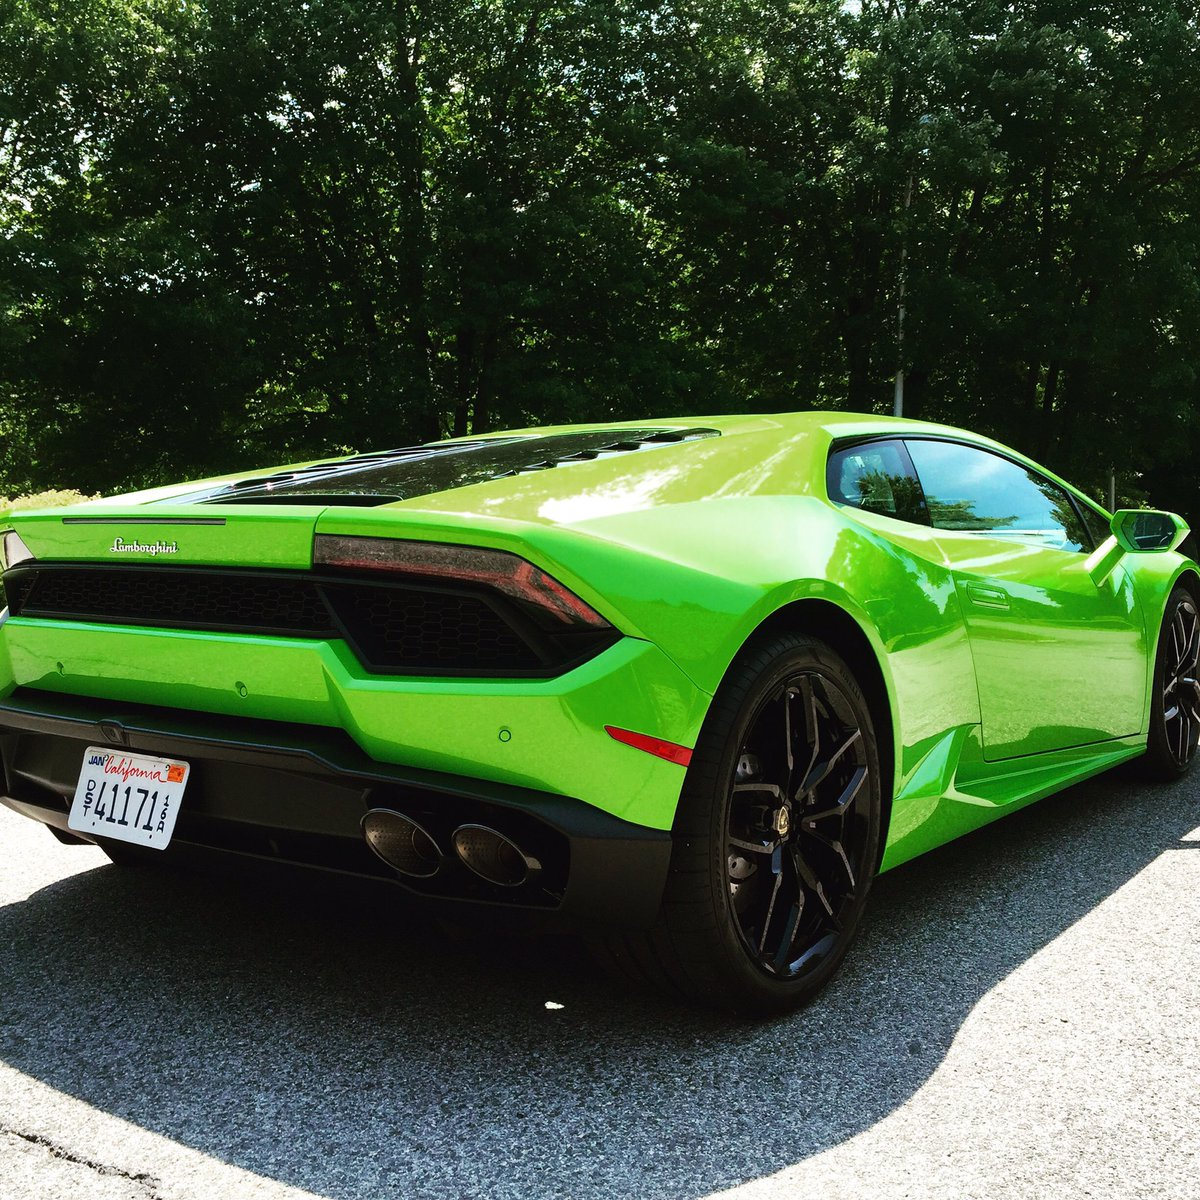 I like the @Lamborghini Huracan even better when only the back wheels are powered https://t.co/8YUyDDdv91